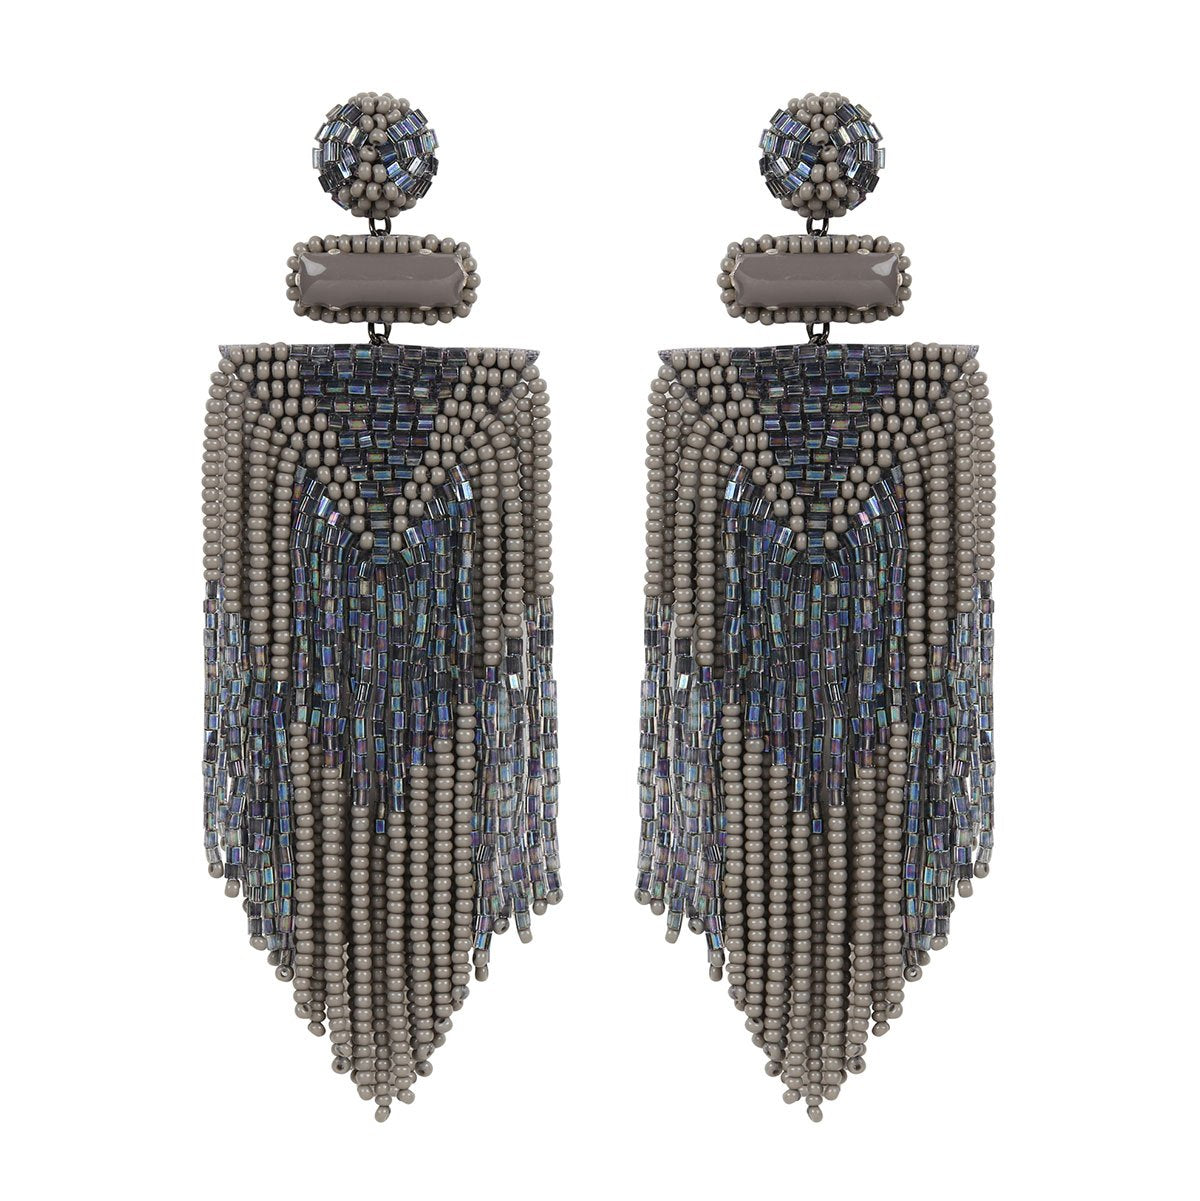 Handmade Embroidered Deepa by Deepa Gurnani Black Jody Earrings